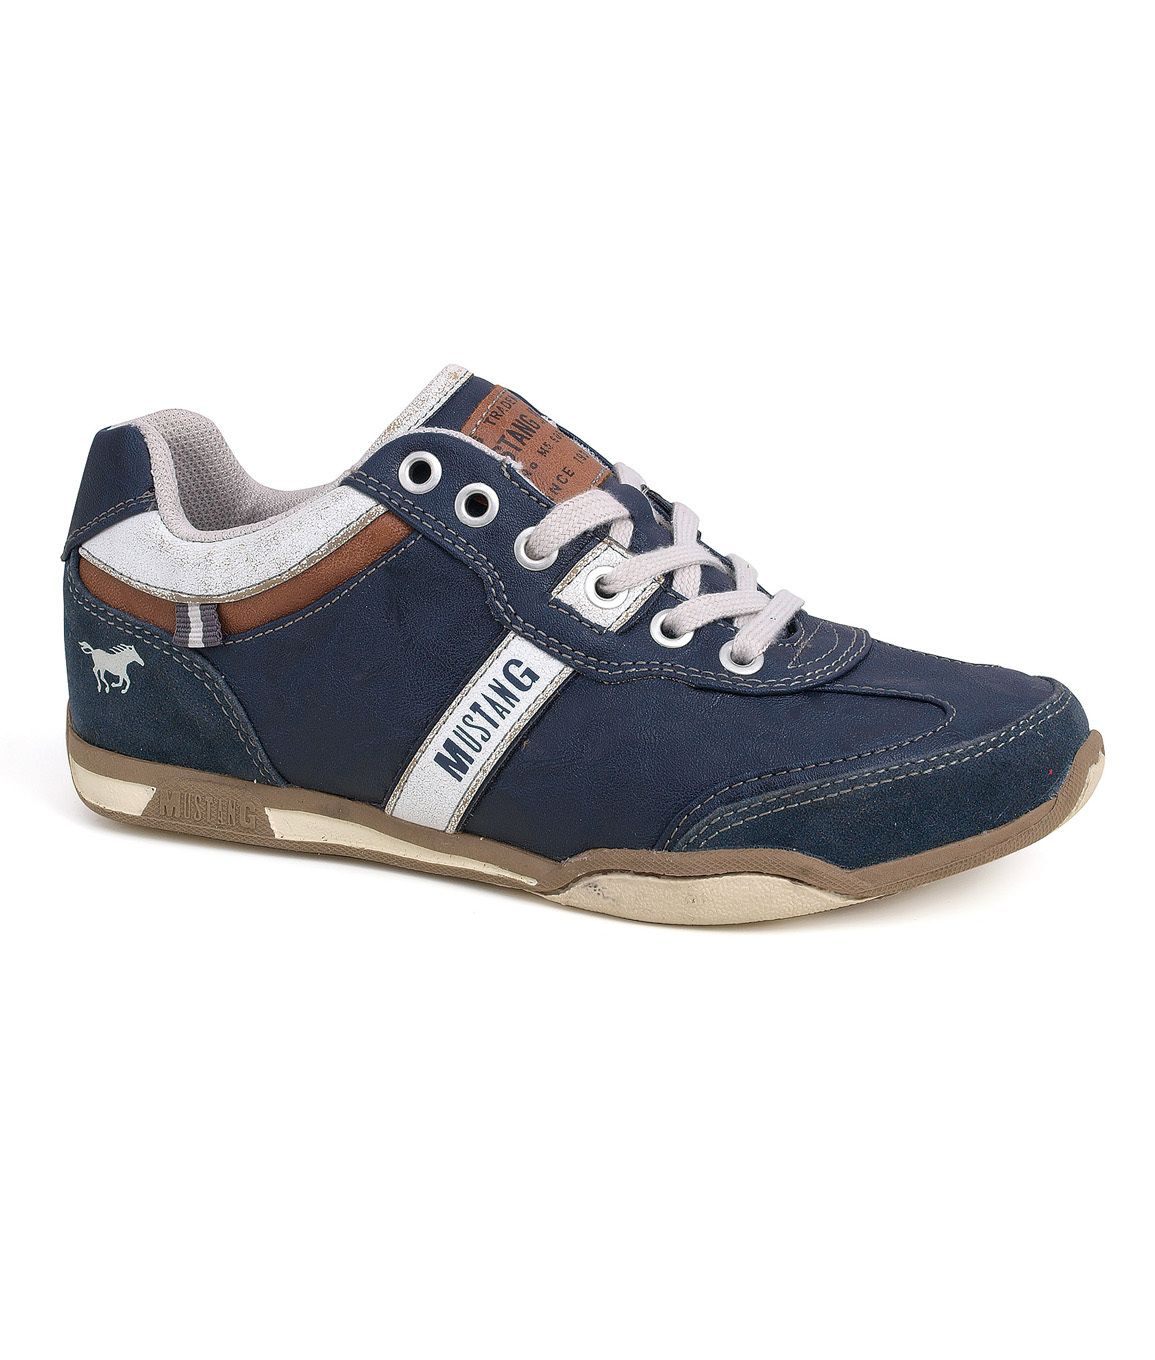 Buty Damskie Mustang Shoes 36c 022 Wiosna 2015 Shoes Saucony Sneaker Sketchers Sneakers